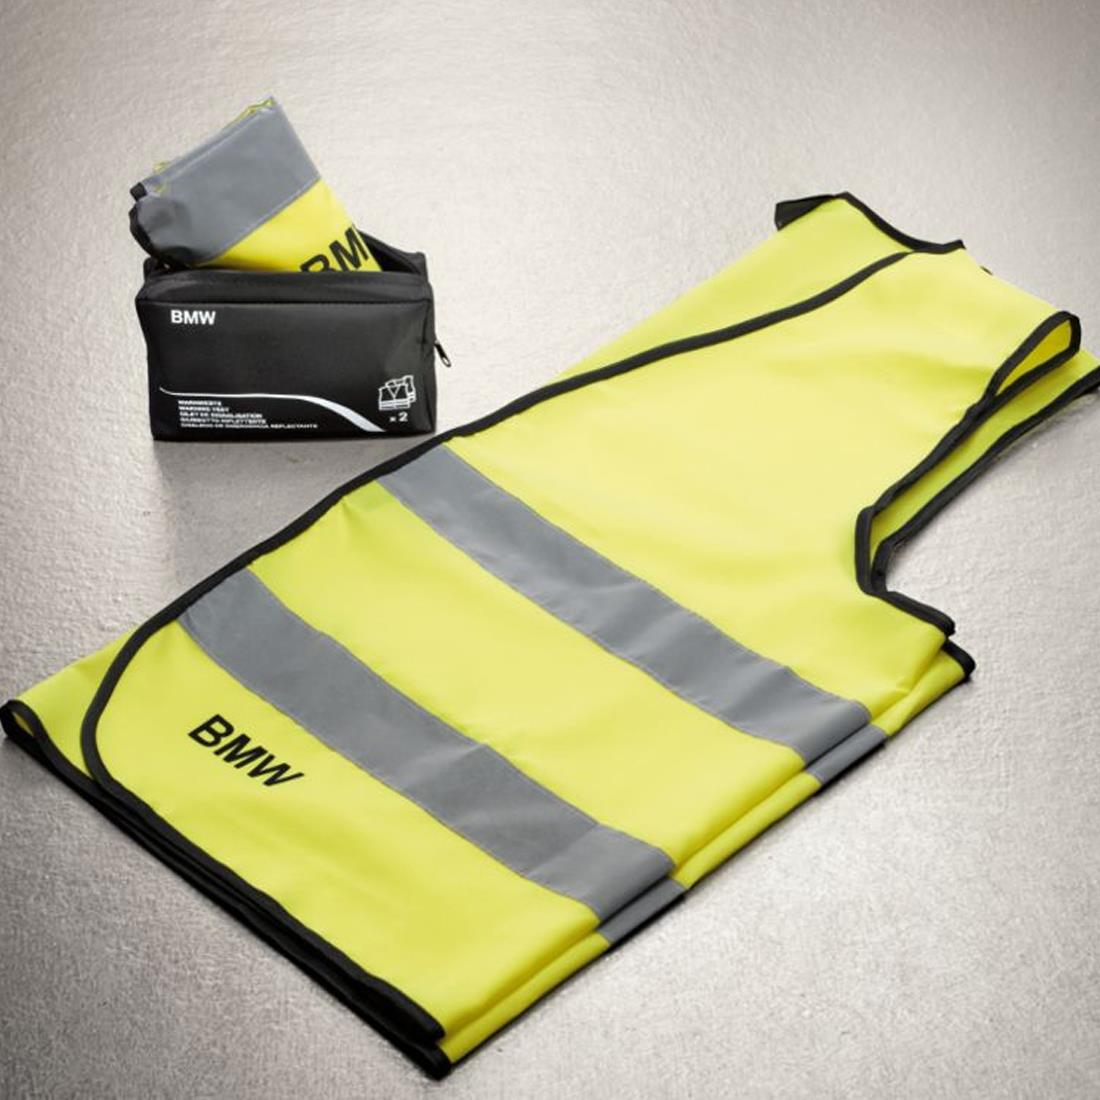 BMW High-visibility safety vests